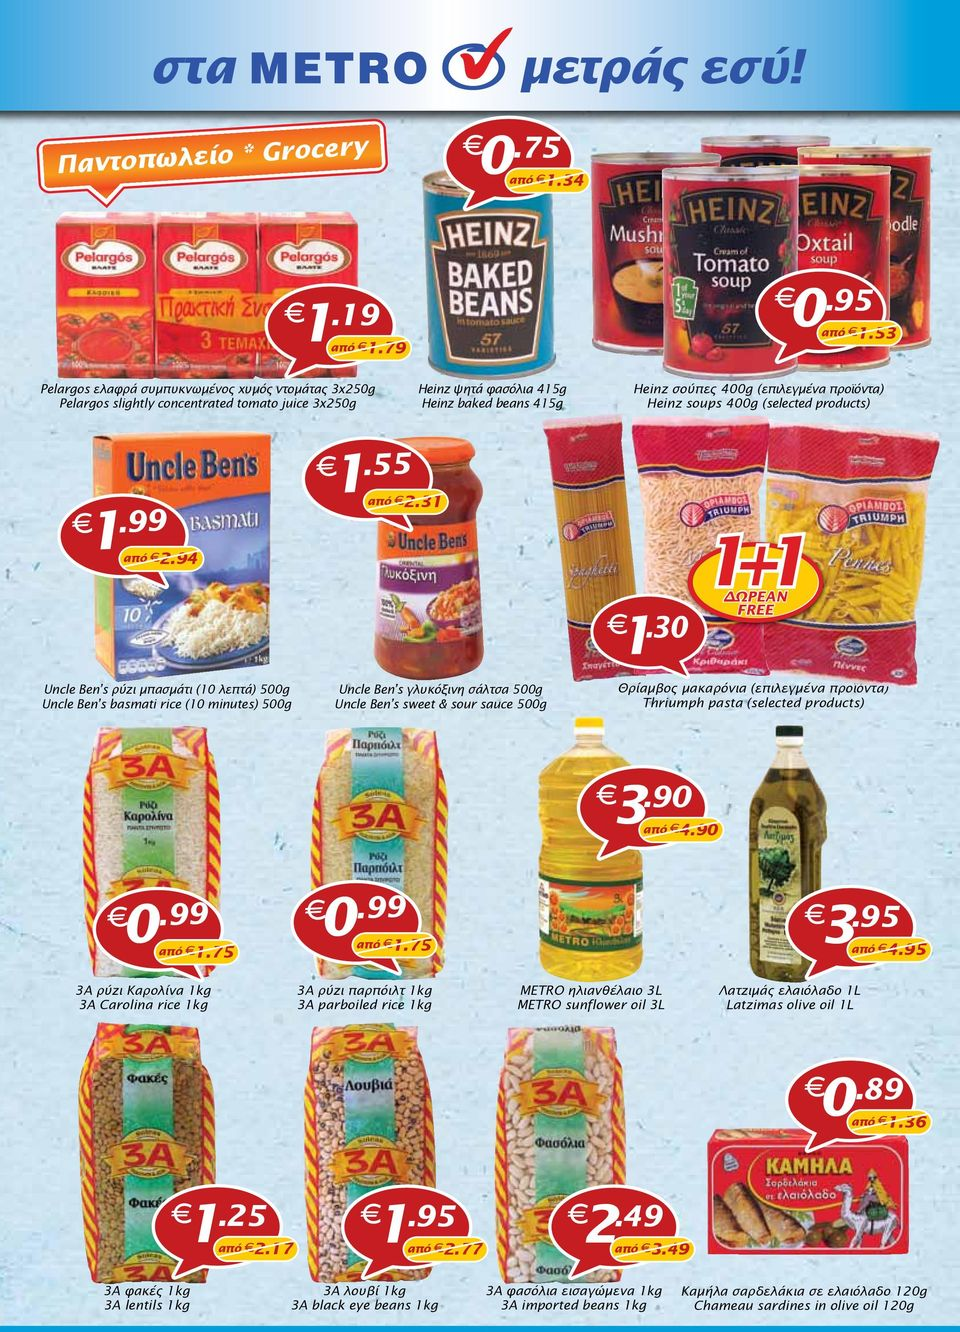 soups 400g (selected products) 1.99 από από 2.94 1.55 από από 2.31 1.